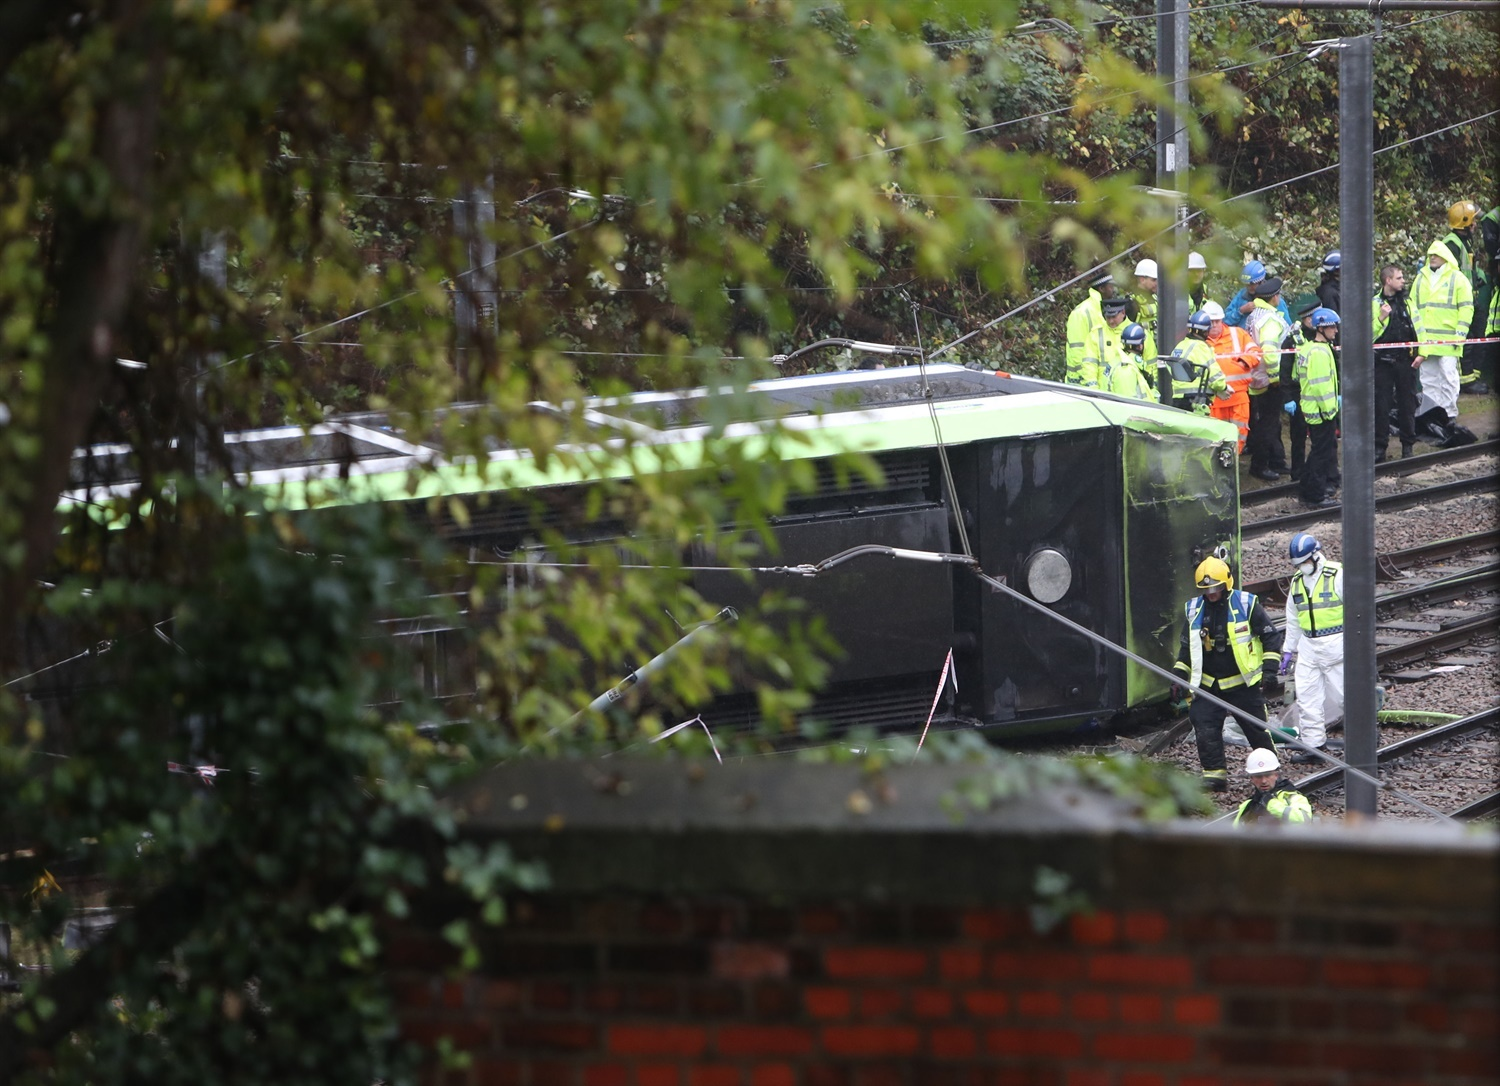 Croydon tram was travelling over three times speed limit, RAIB finds